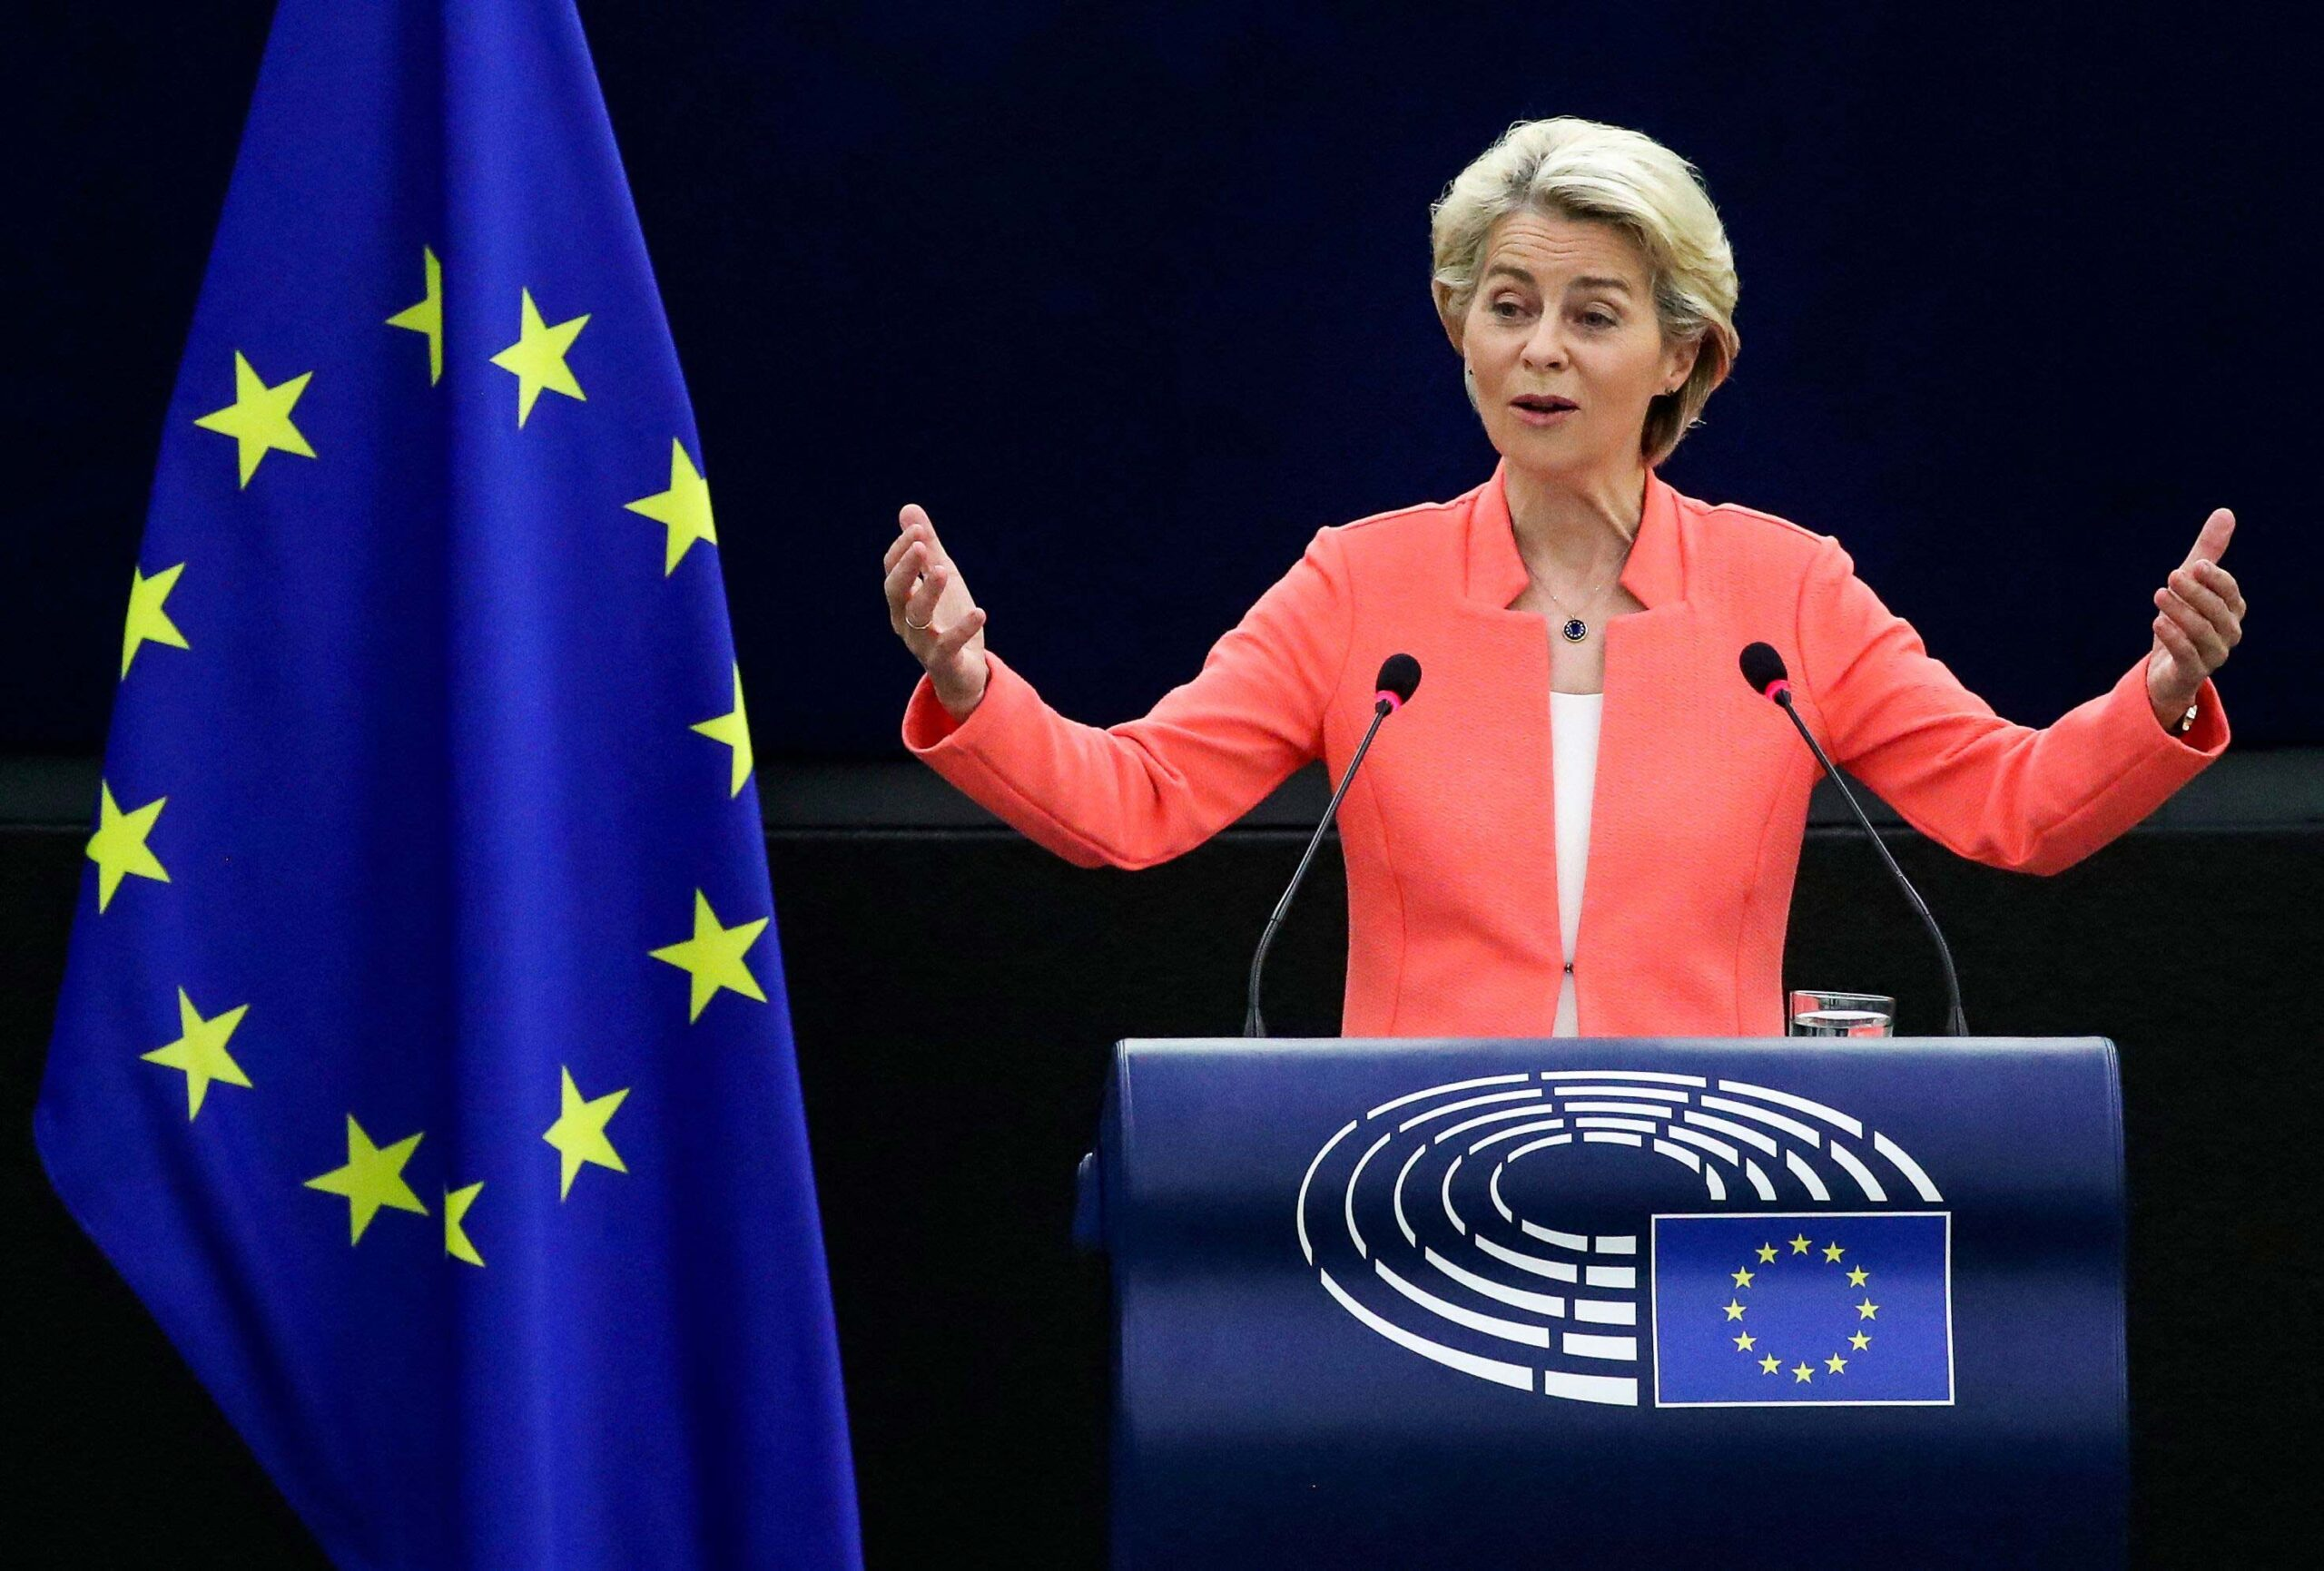 <i>YVES HERMAN/Pool/AFP/Getty Images</i><br/>European Commission President Ursula von der Leyen announced on Wednesday an additional €4 billion ($4.7 billion) in climate finance to transfer to developing nations.